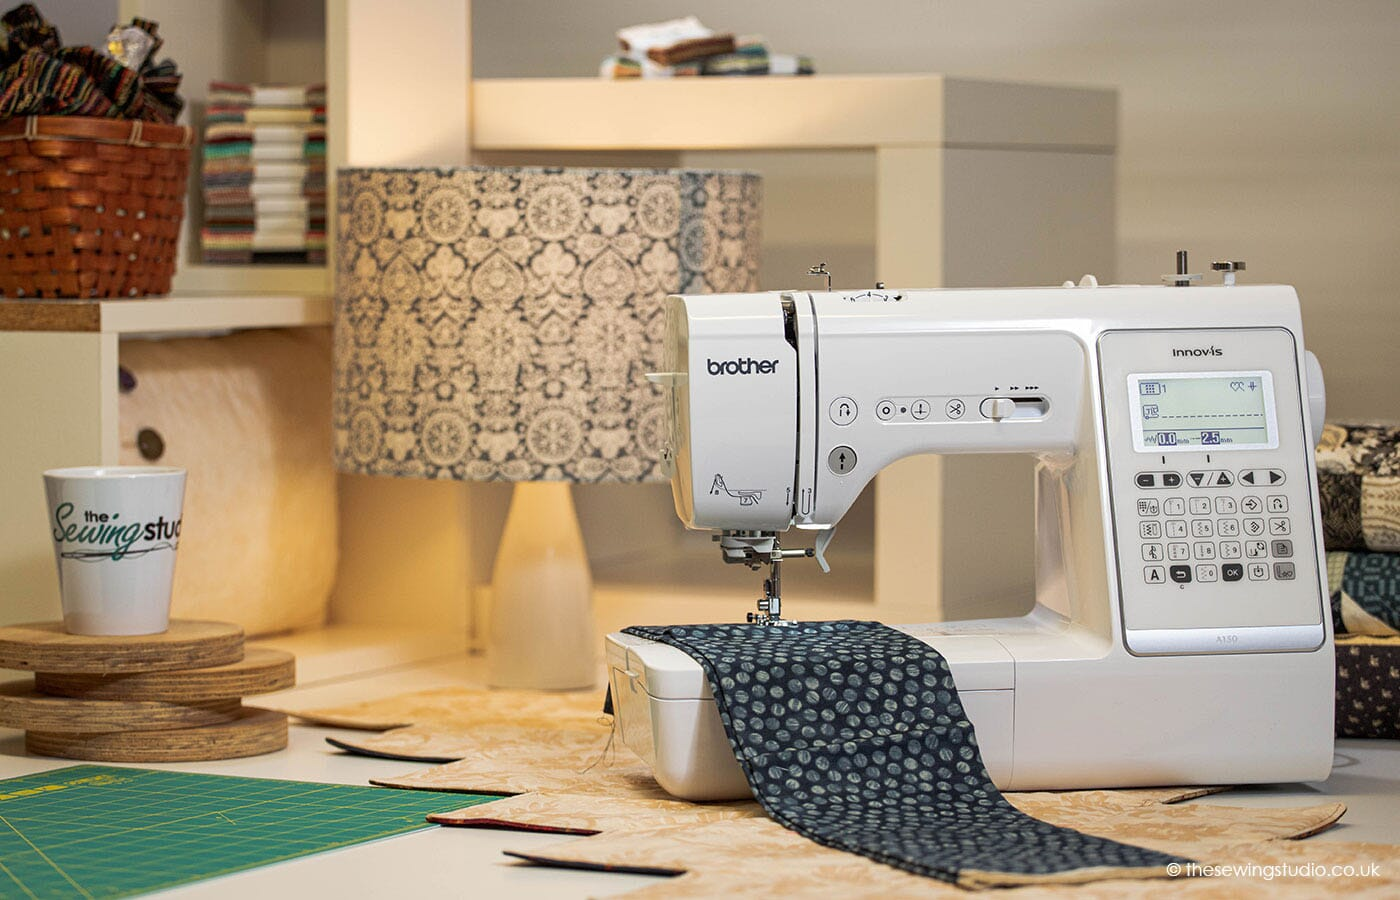 Brother Innov-is A150 Sewing Machine in a Sewing Room